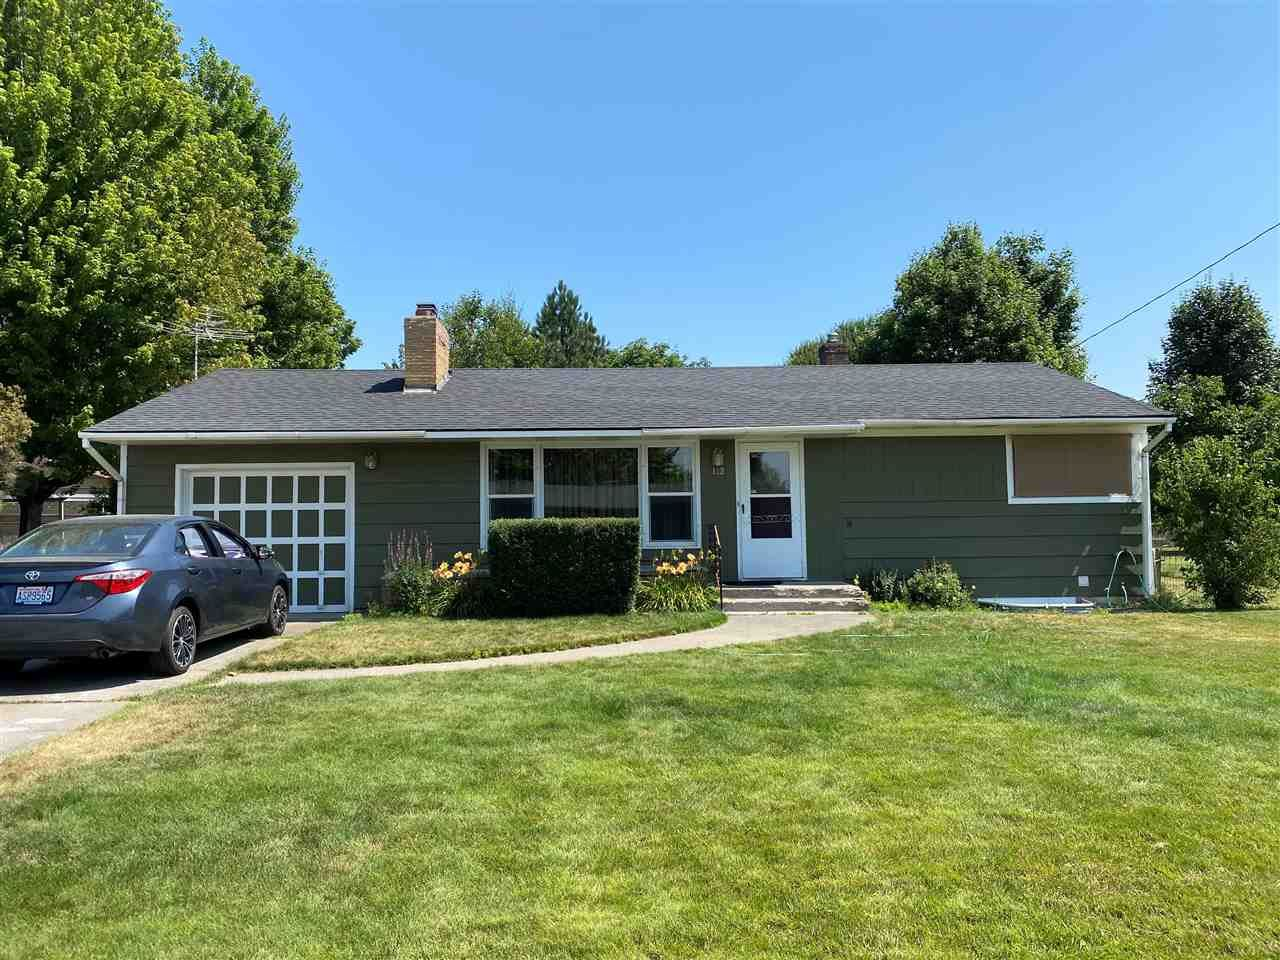 122 N McCabe Rd, Spokane Valley, WA 99216-3200 - #: 202019754